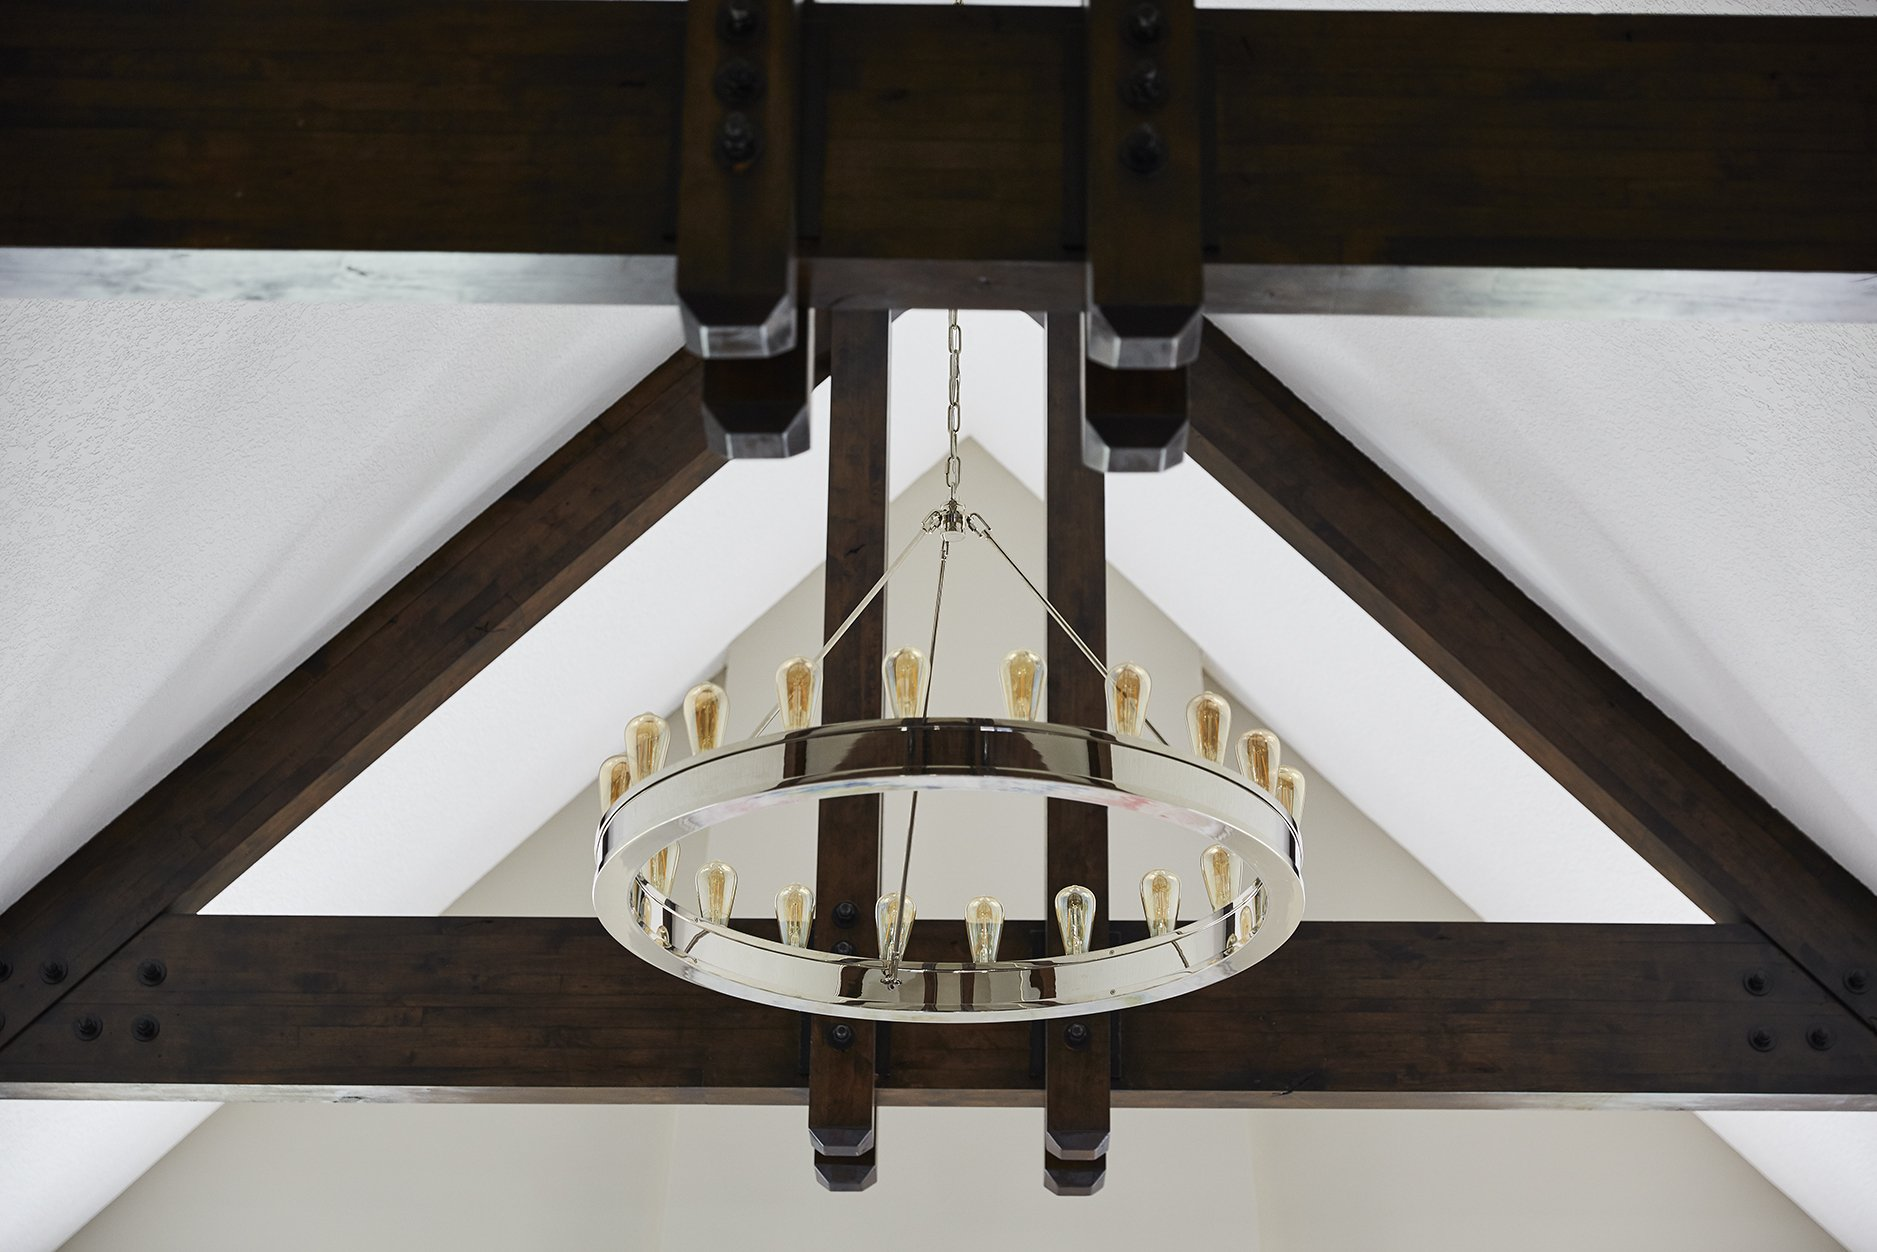 This modular ring chandelier by Ralph Lauren for Visual Comfort perfectly balanced a modern and traditional aesthetic, upgrading the look of the overall space and balancing out the grand ceiling.